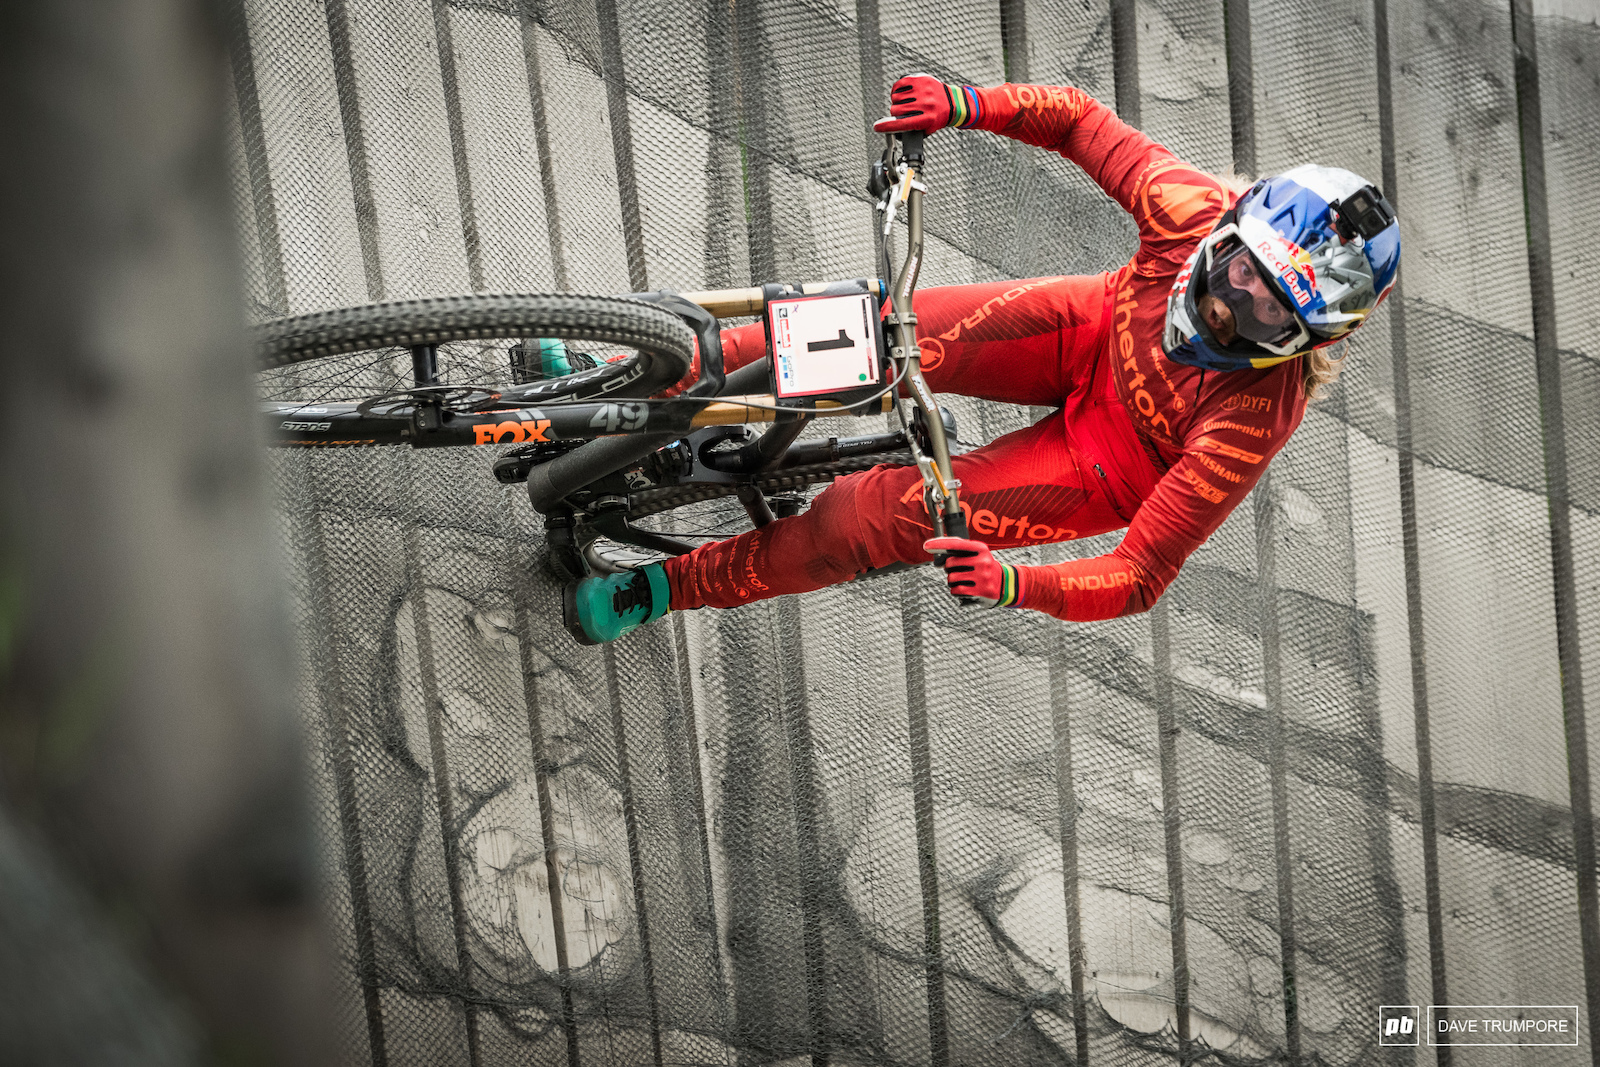 2nd today for series leader Rachel Atherton